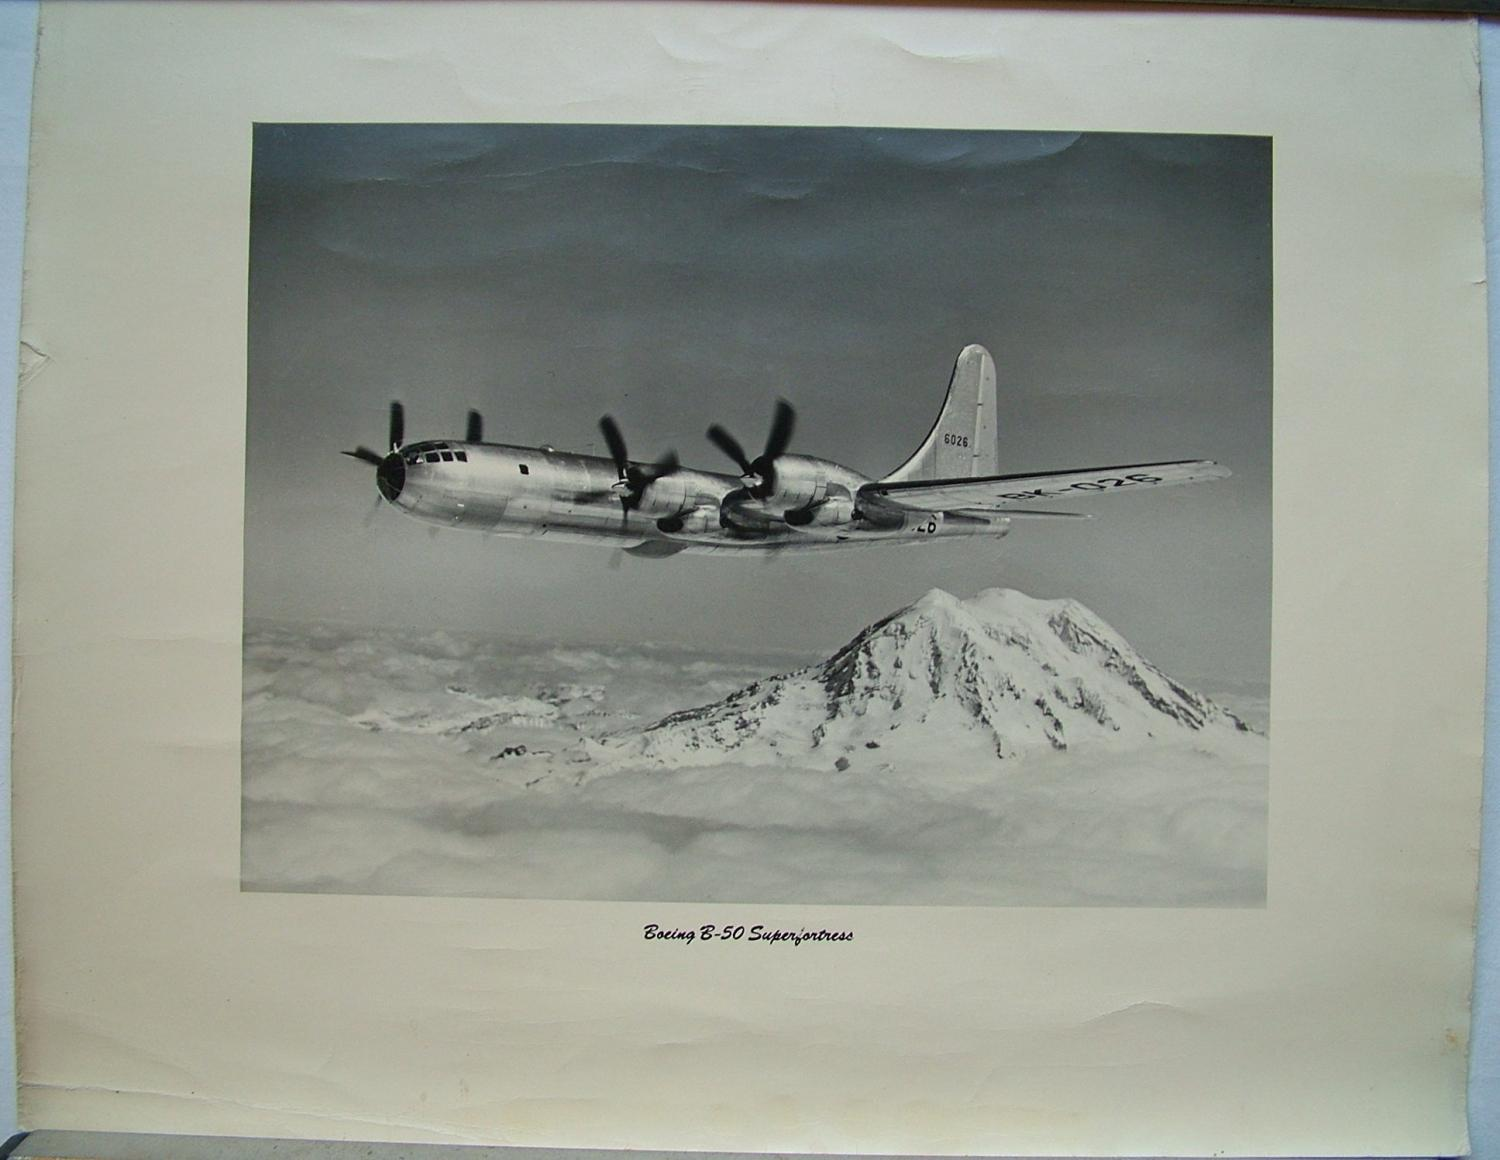 Official Boeing B-50 Superfortress Photo